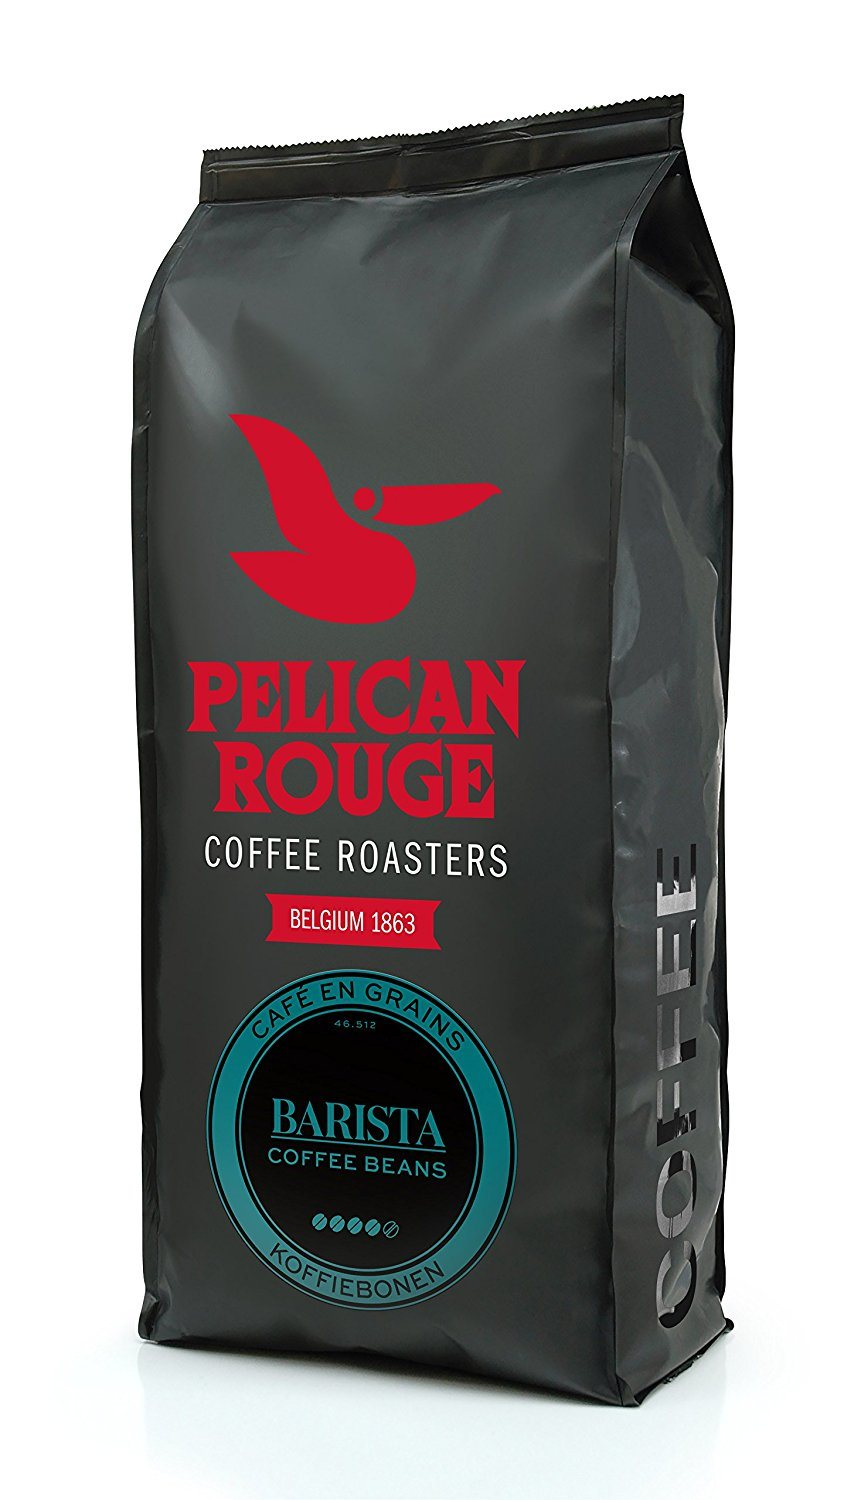 Pelican Rouge Barista Coffee Blend